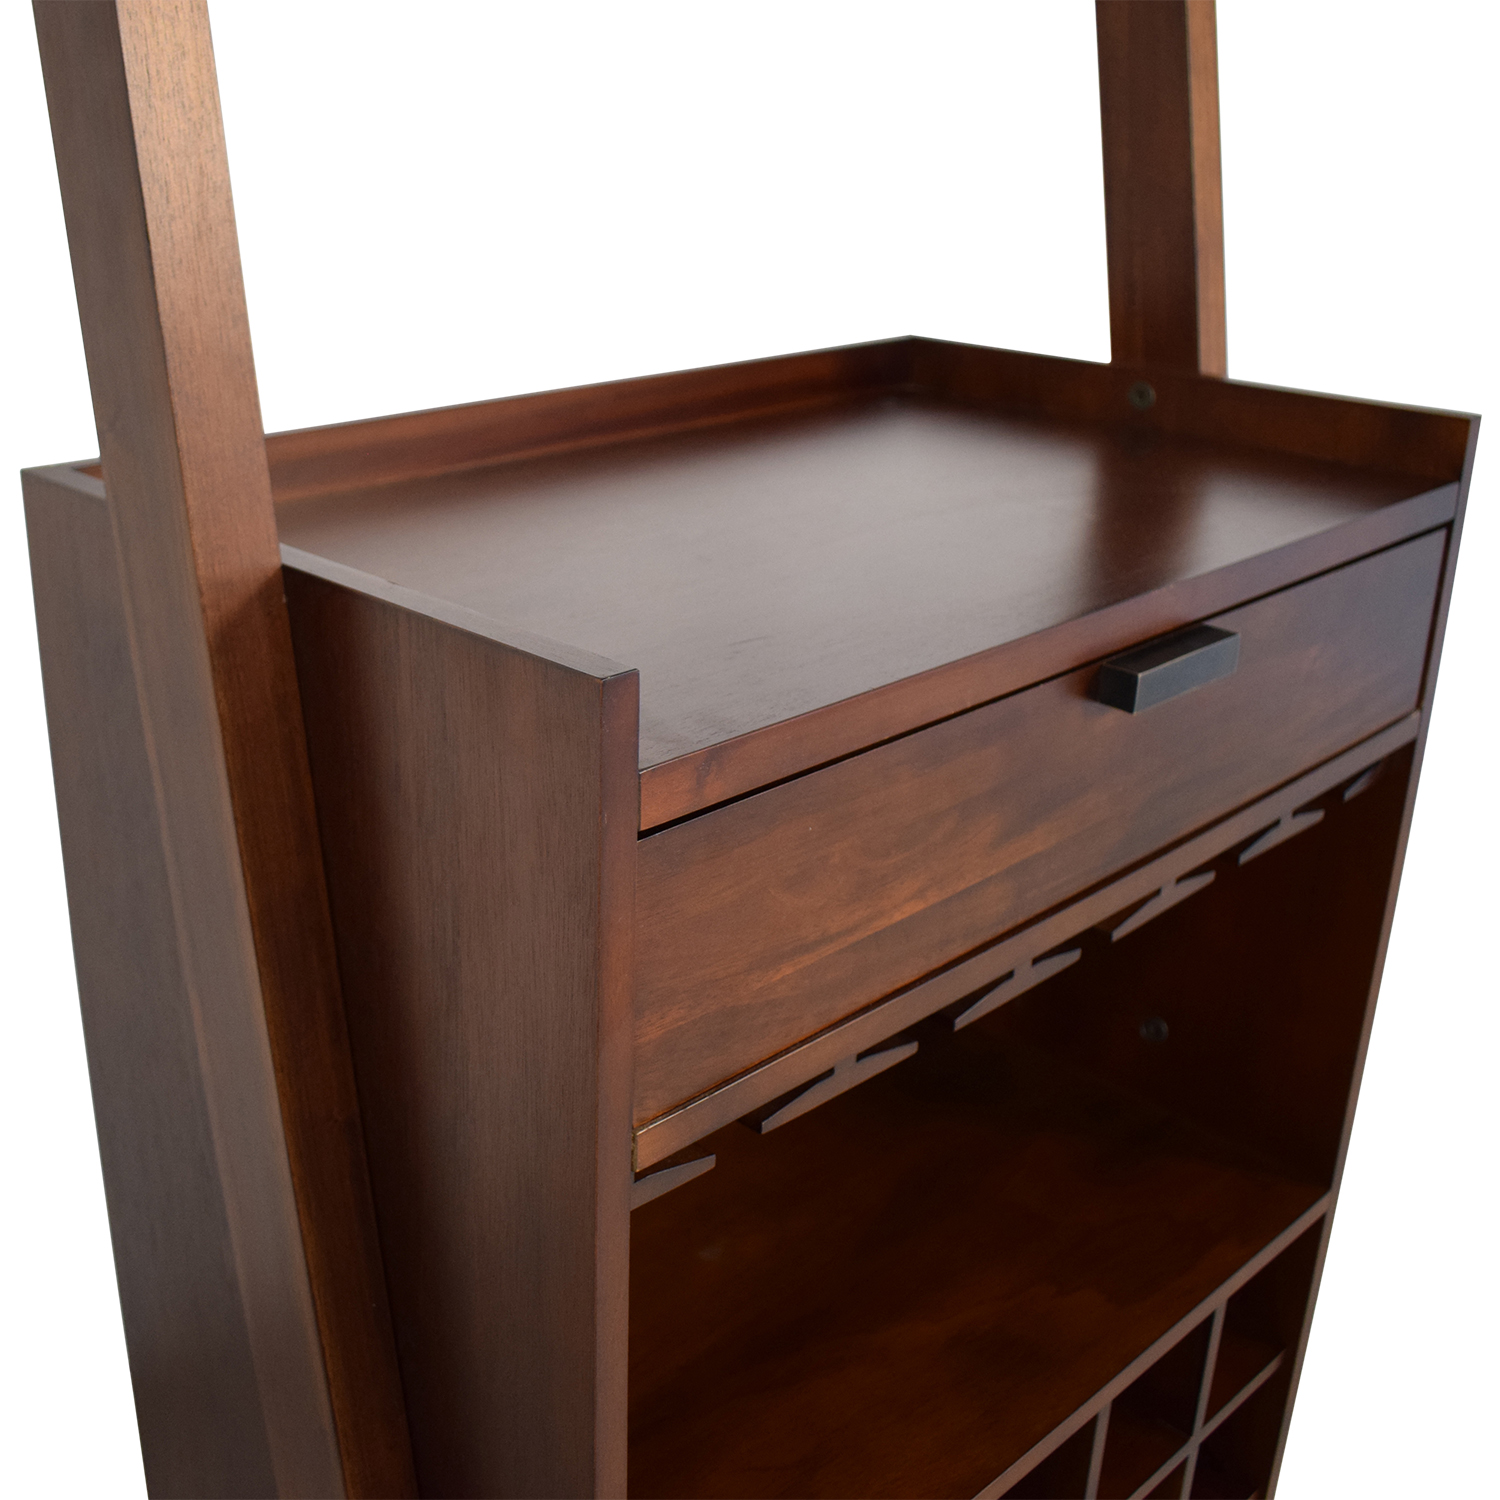 Crate & Barrel Sawyer Leaning Wine Bar / Bookcases & Shelving